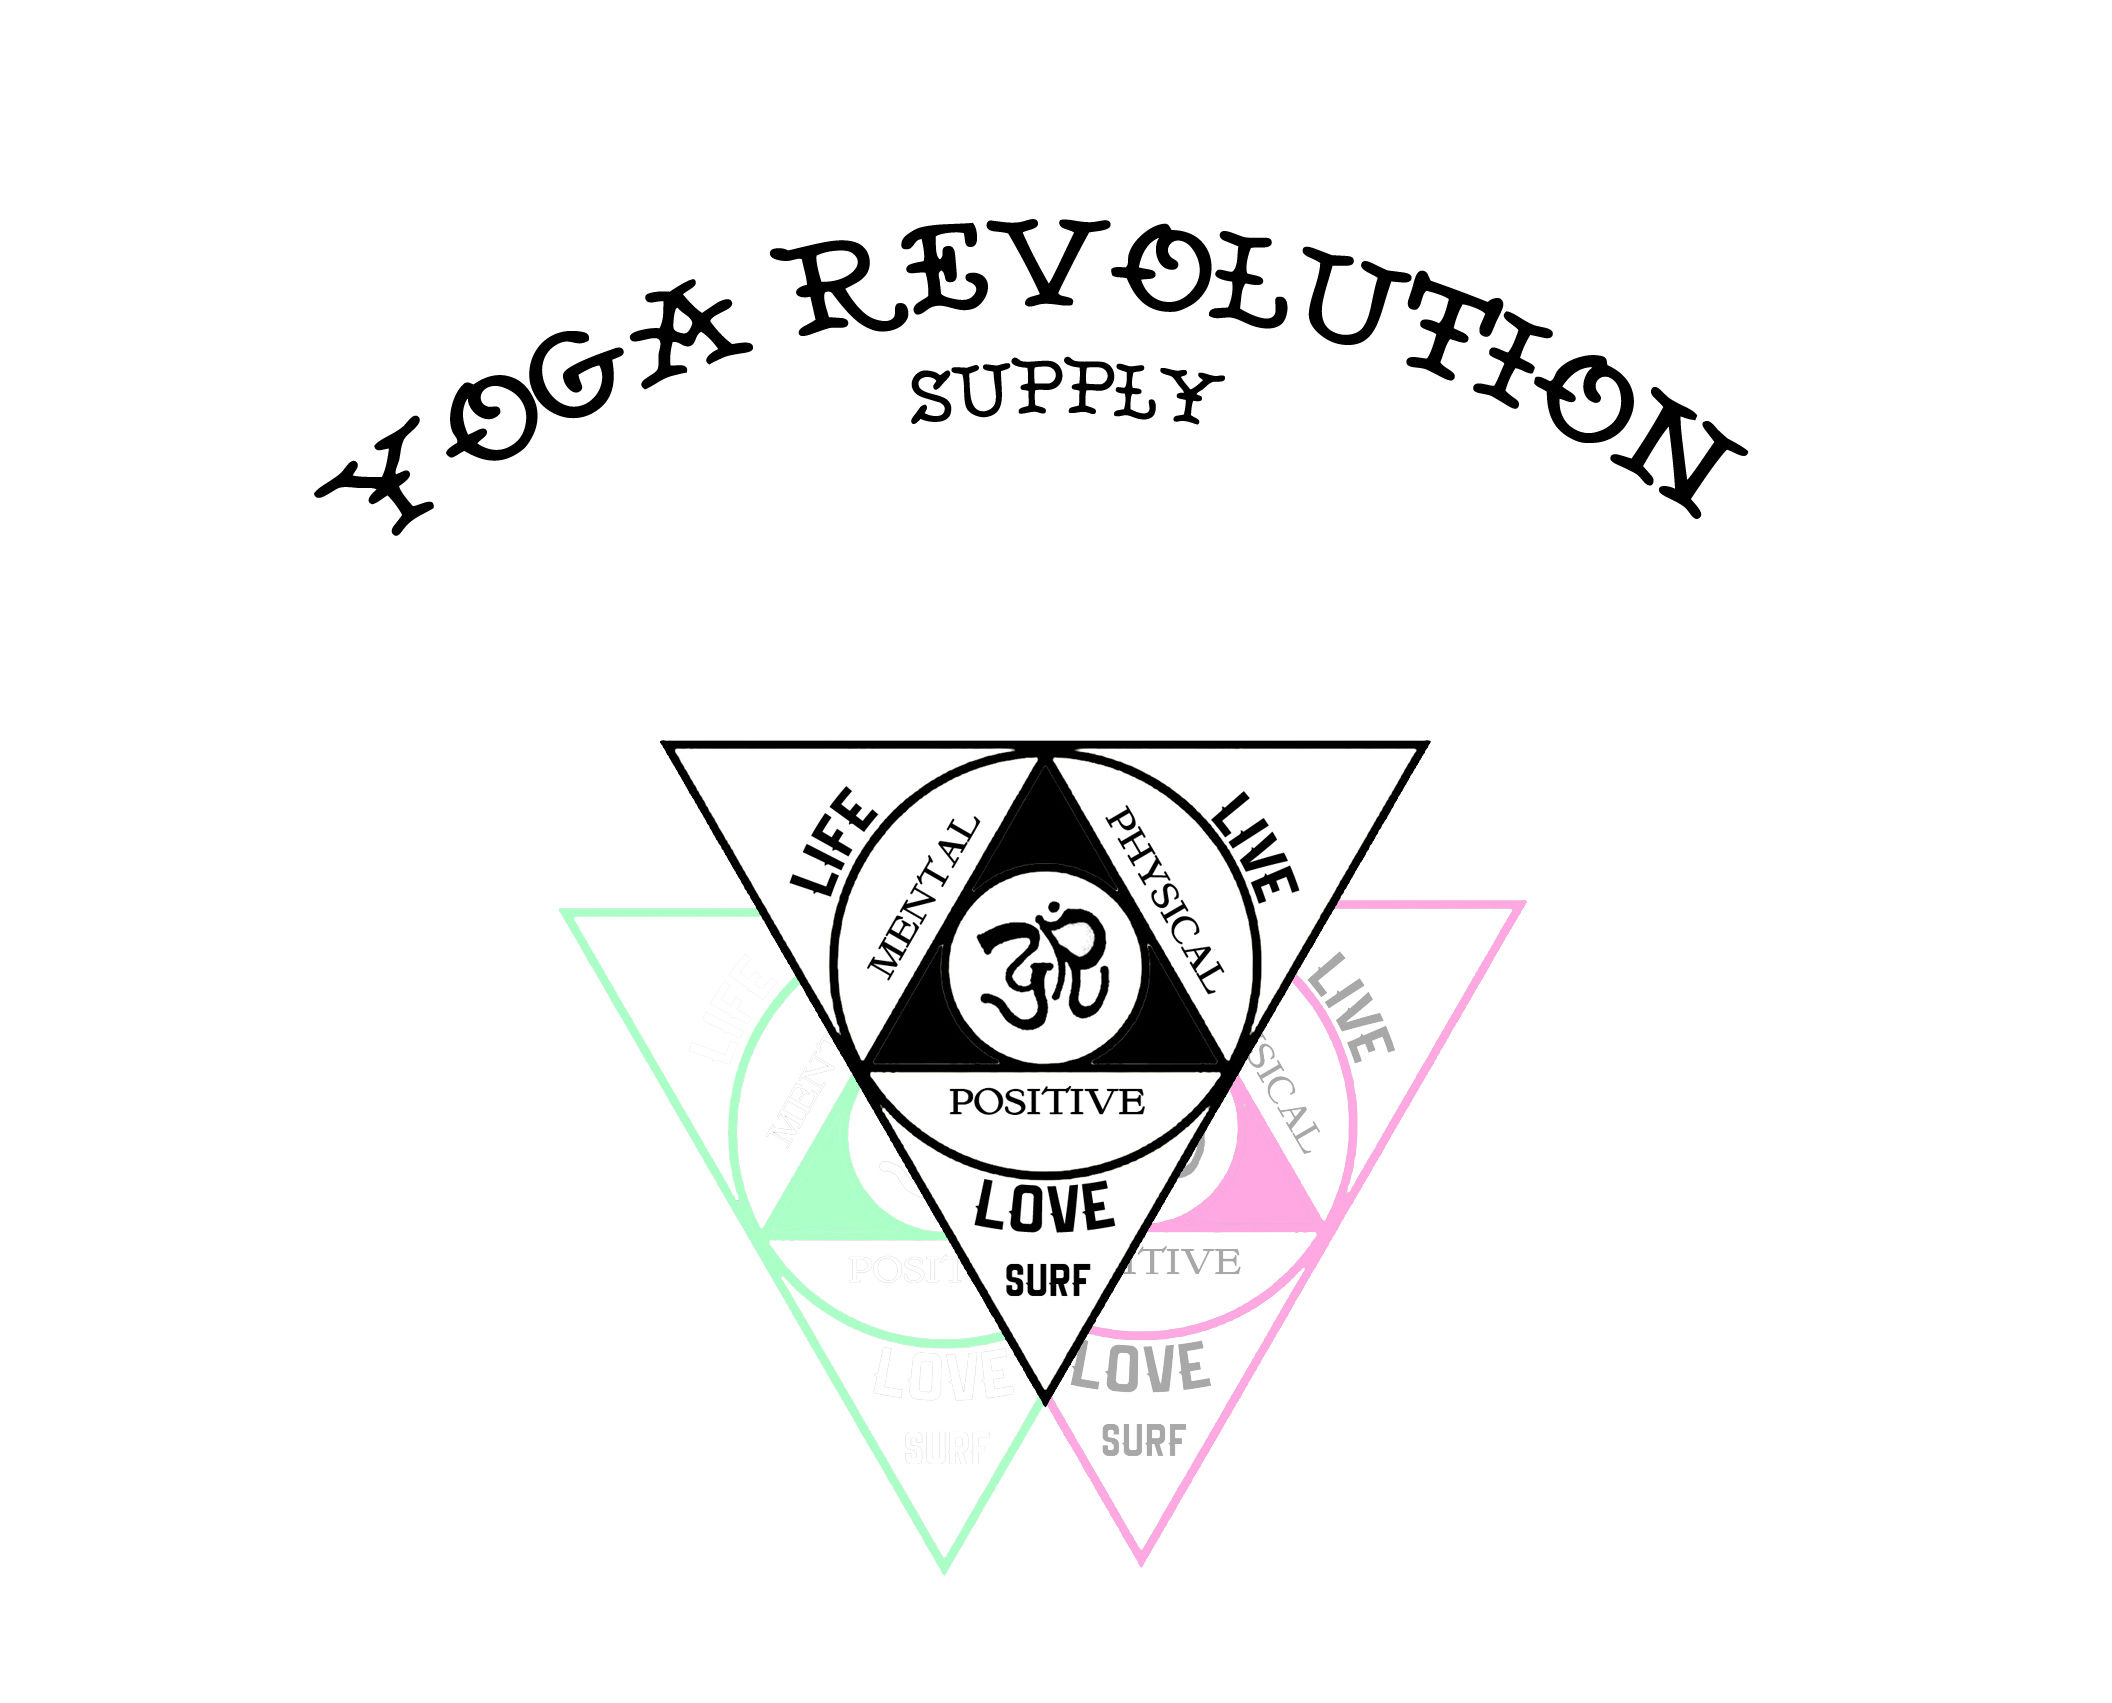 YOGA REVOLUTION supply